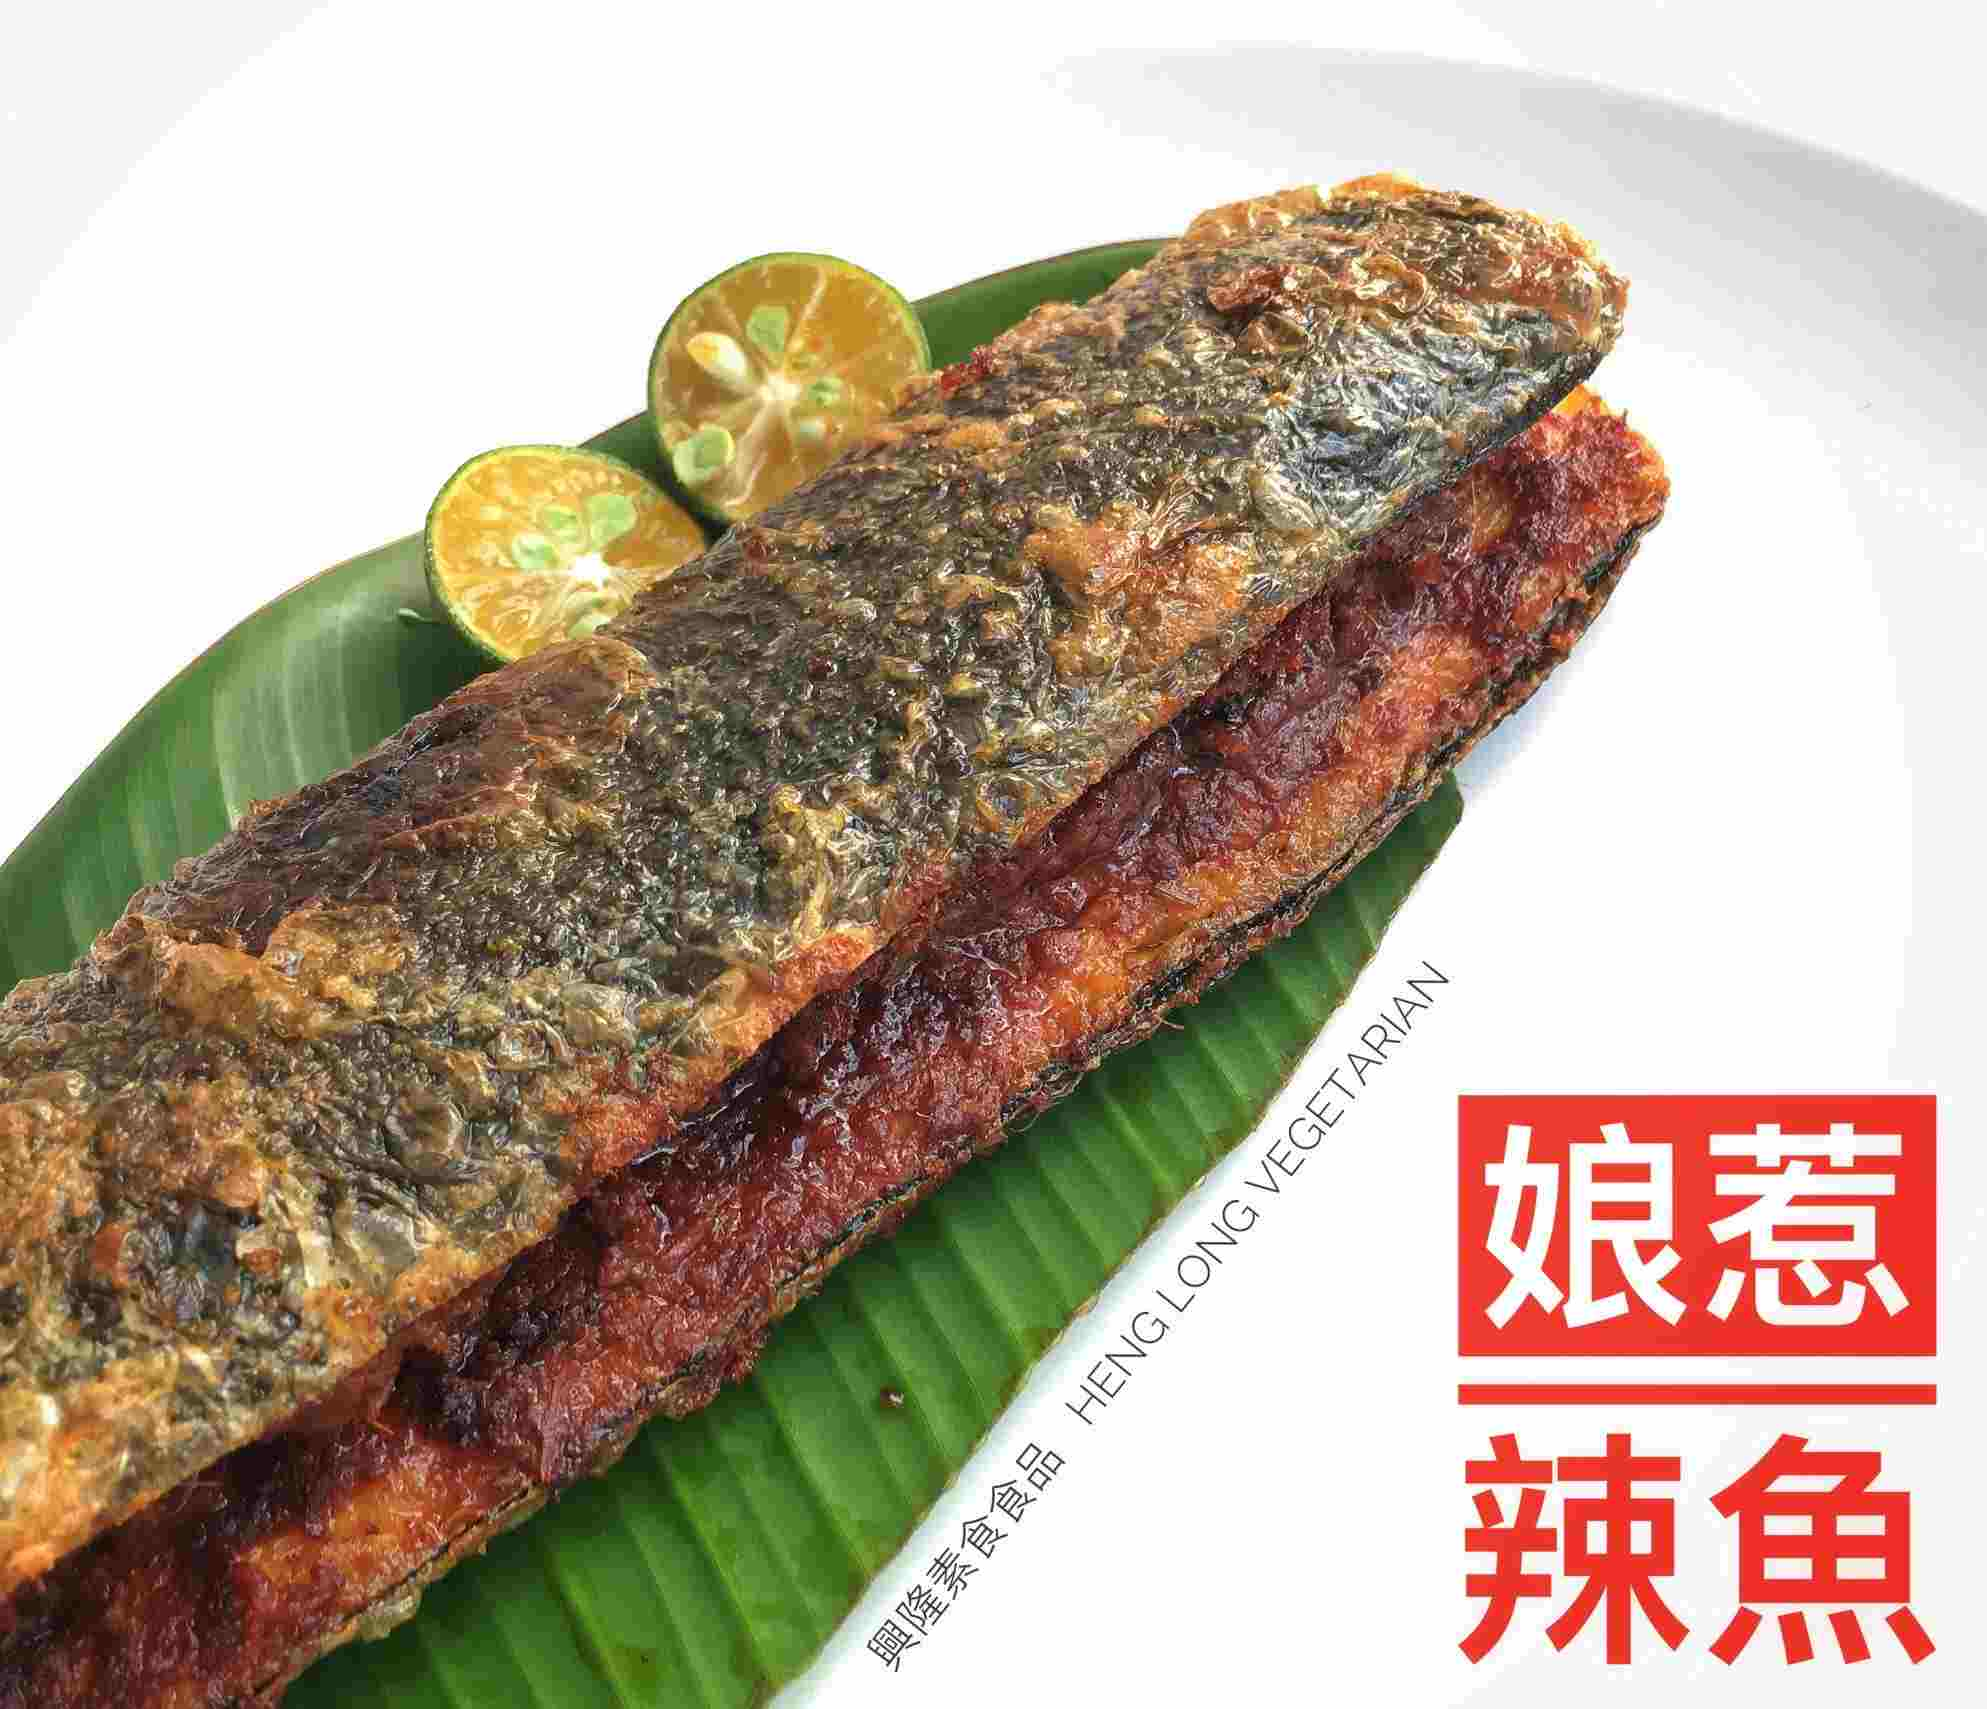 Image XL NYONYA CHILLI FISH 兴隆 - 辣椒鱼 240grams